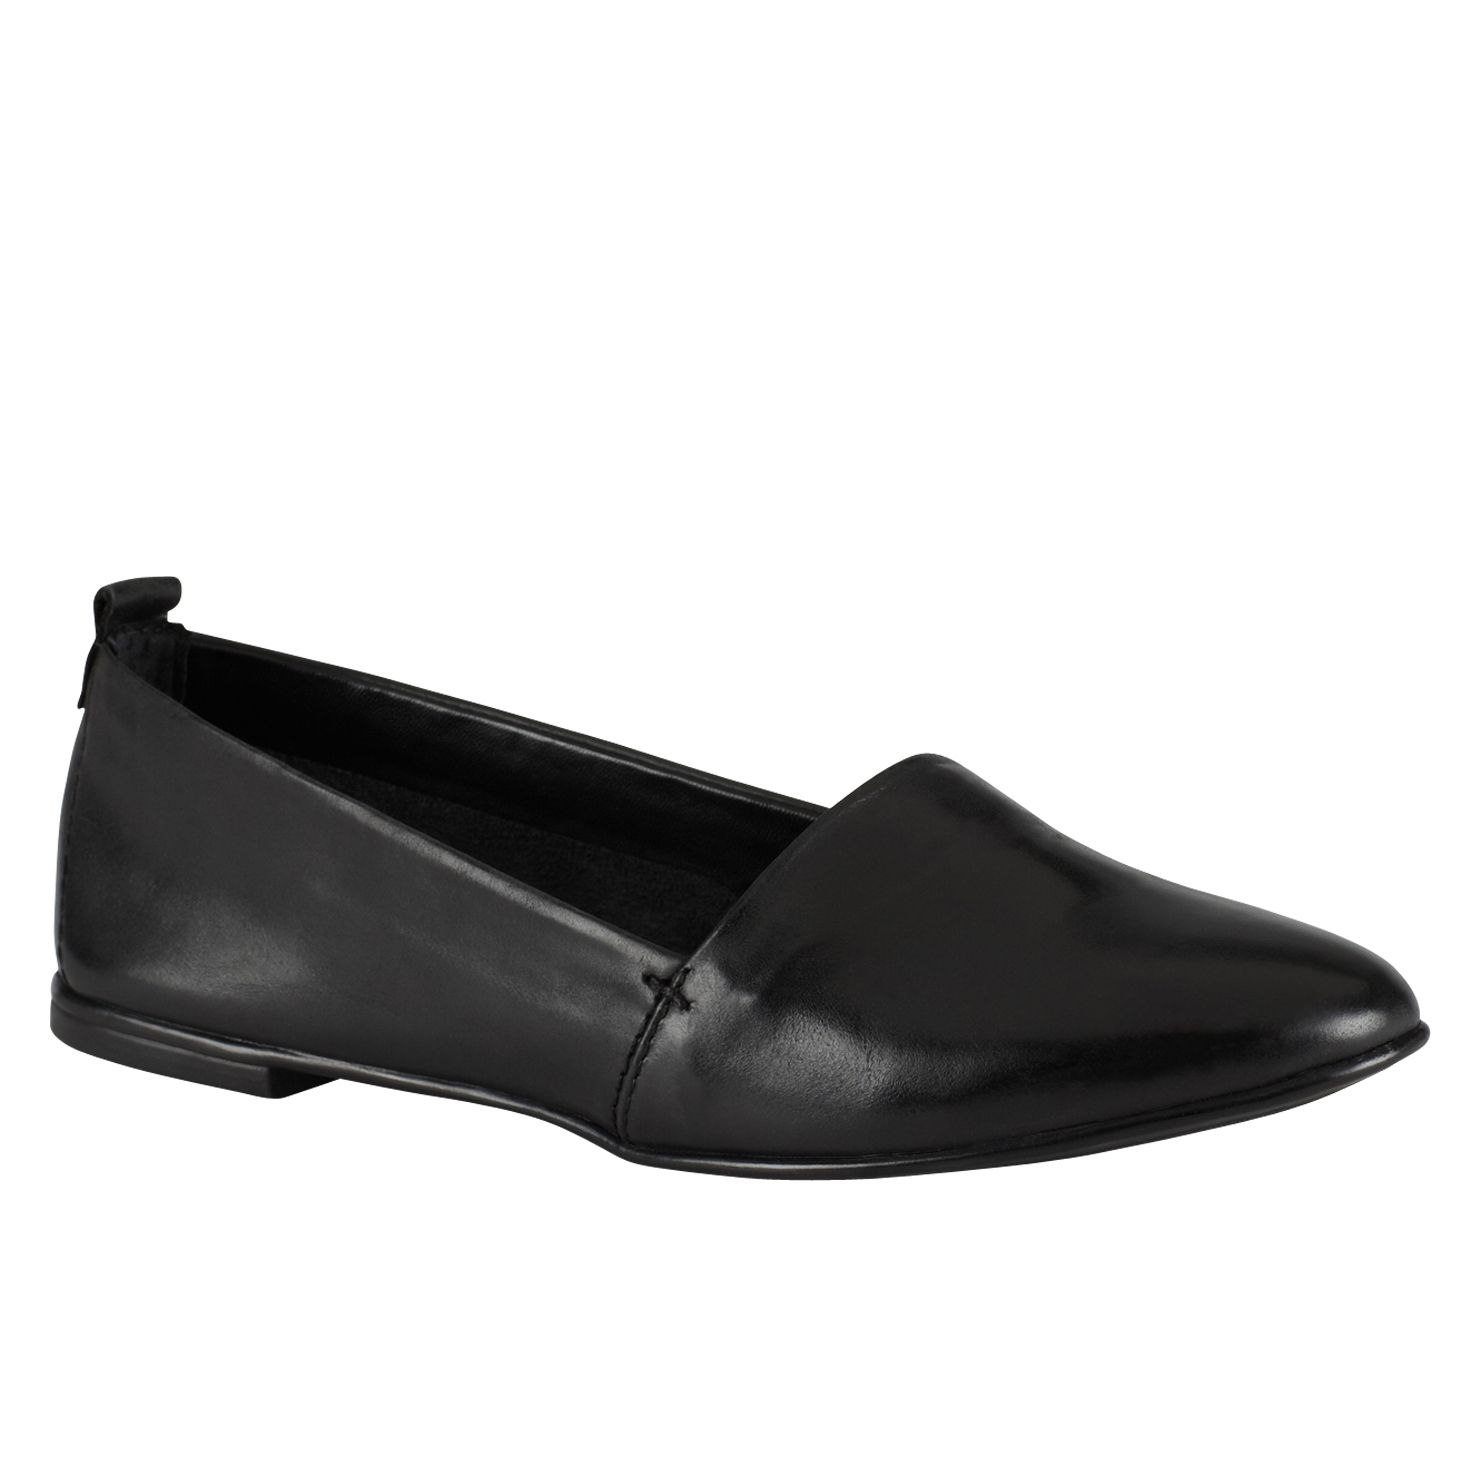 Faesa round toe slip on shoes